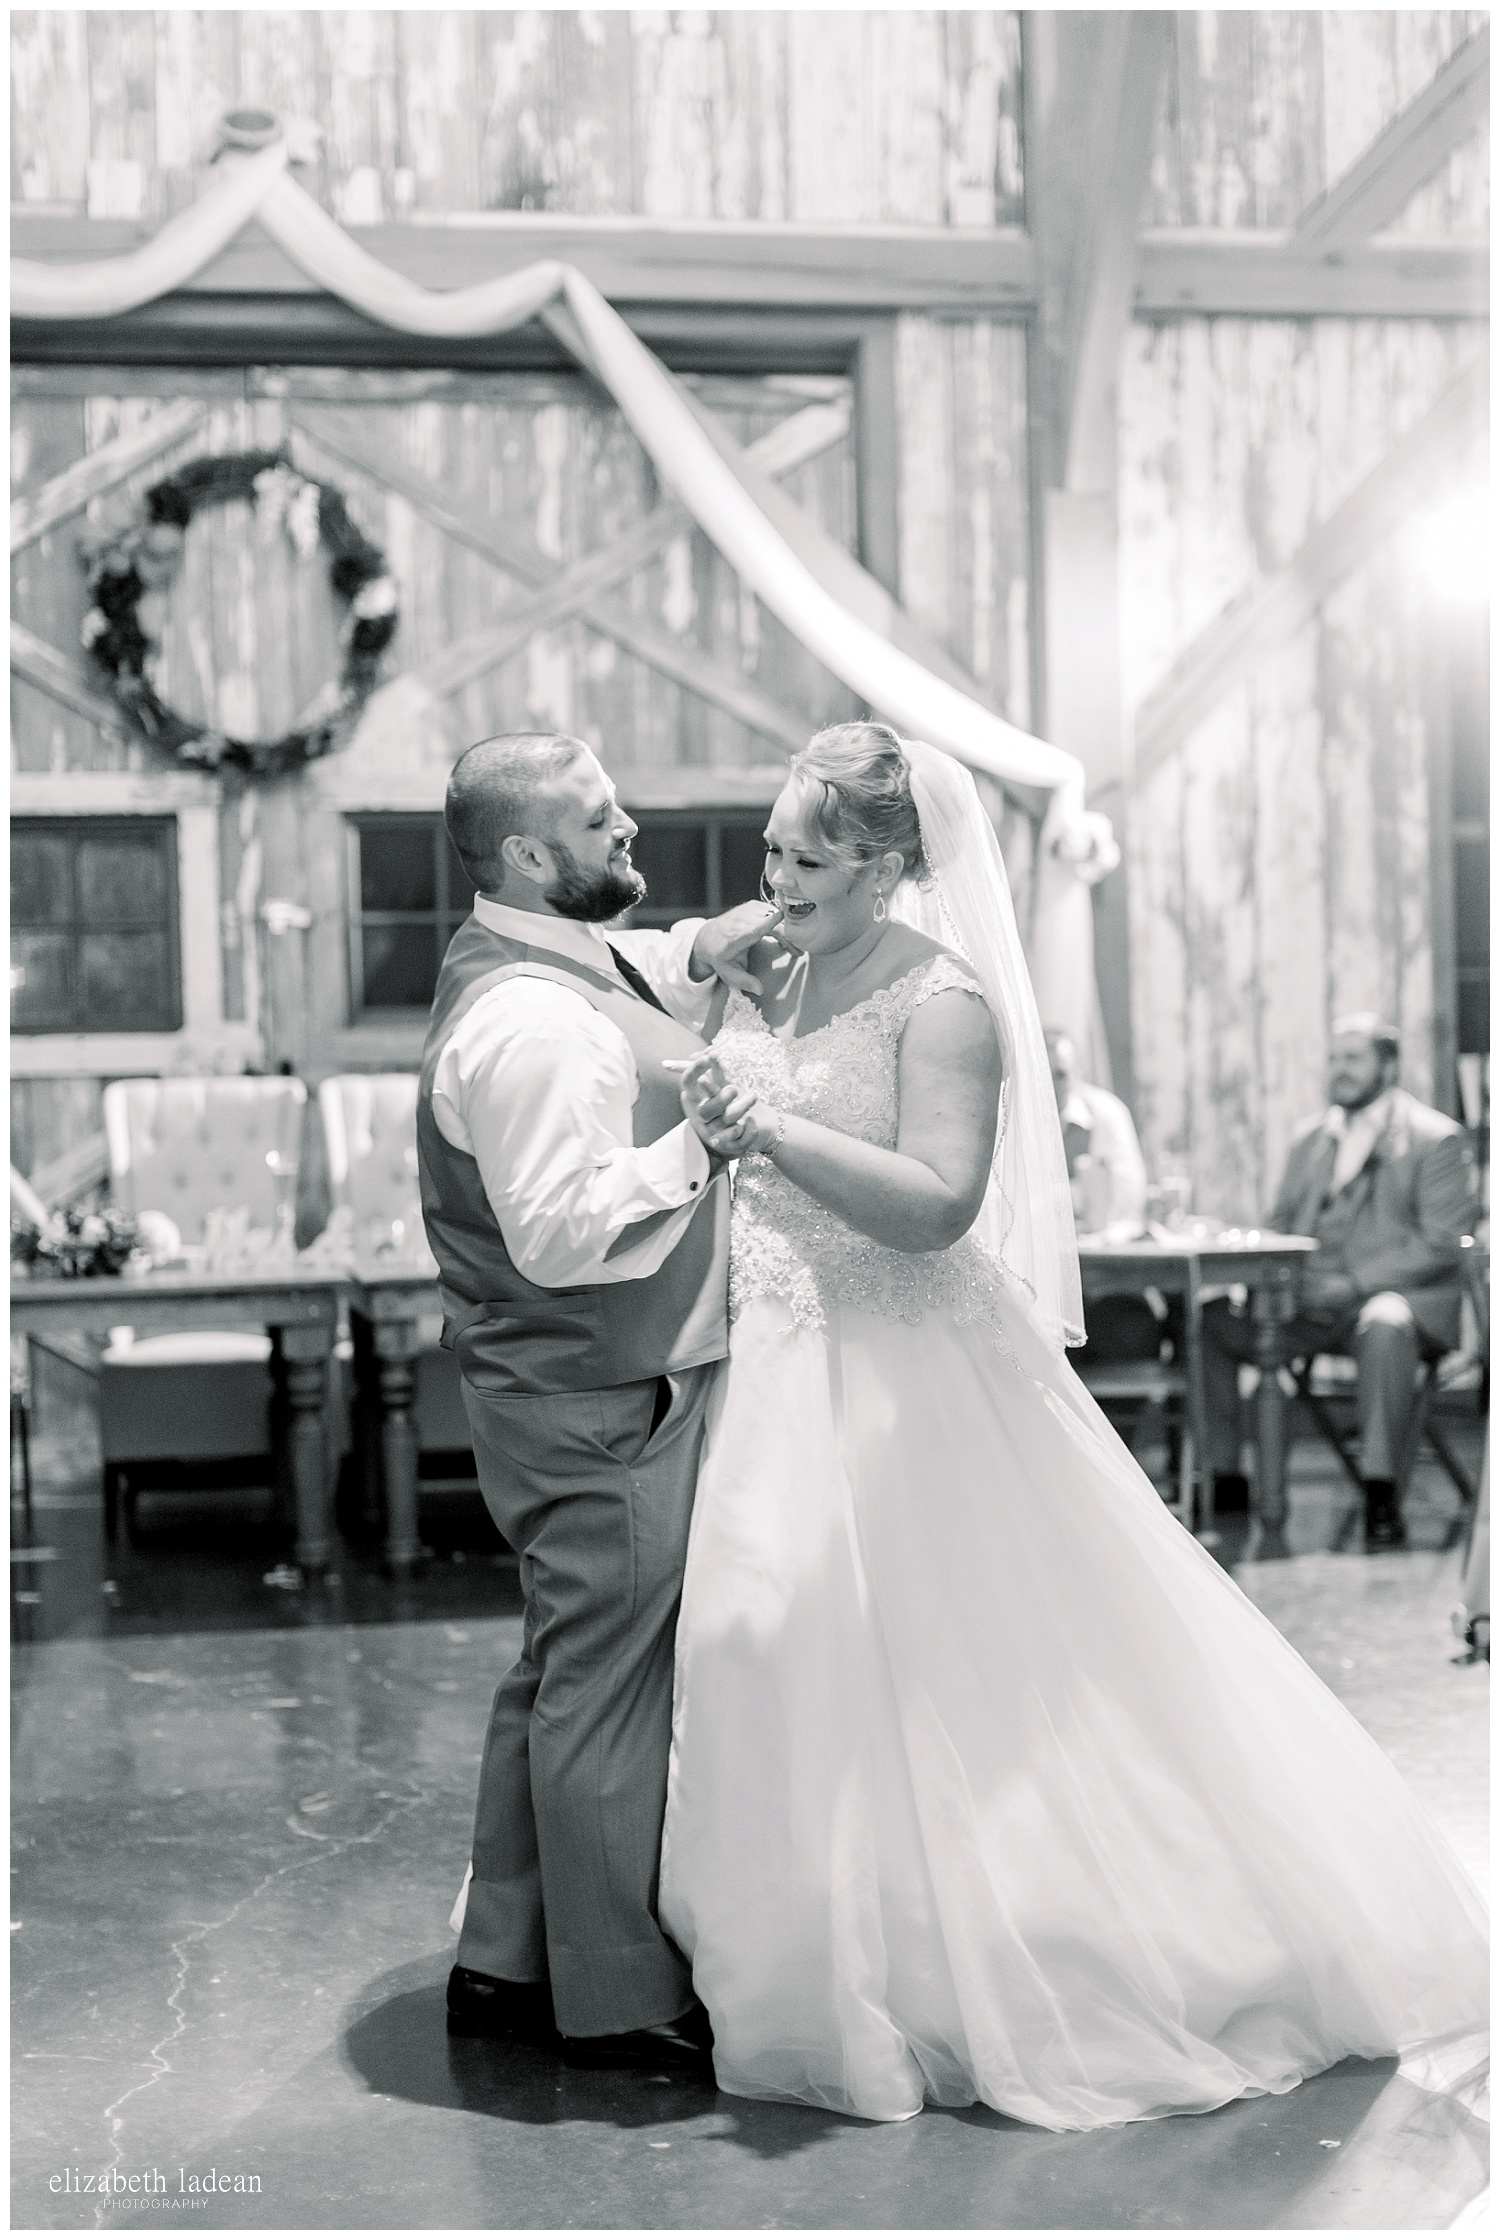 Weston-Timber-Barn-Wedding-Photography-L+A-elizabeth-ladean0photo_1912.jpg